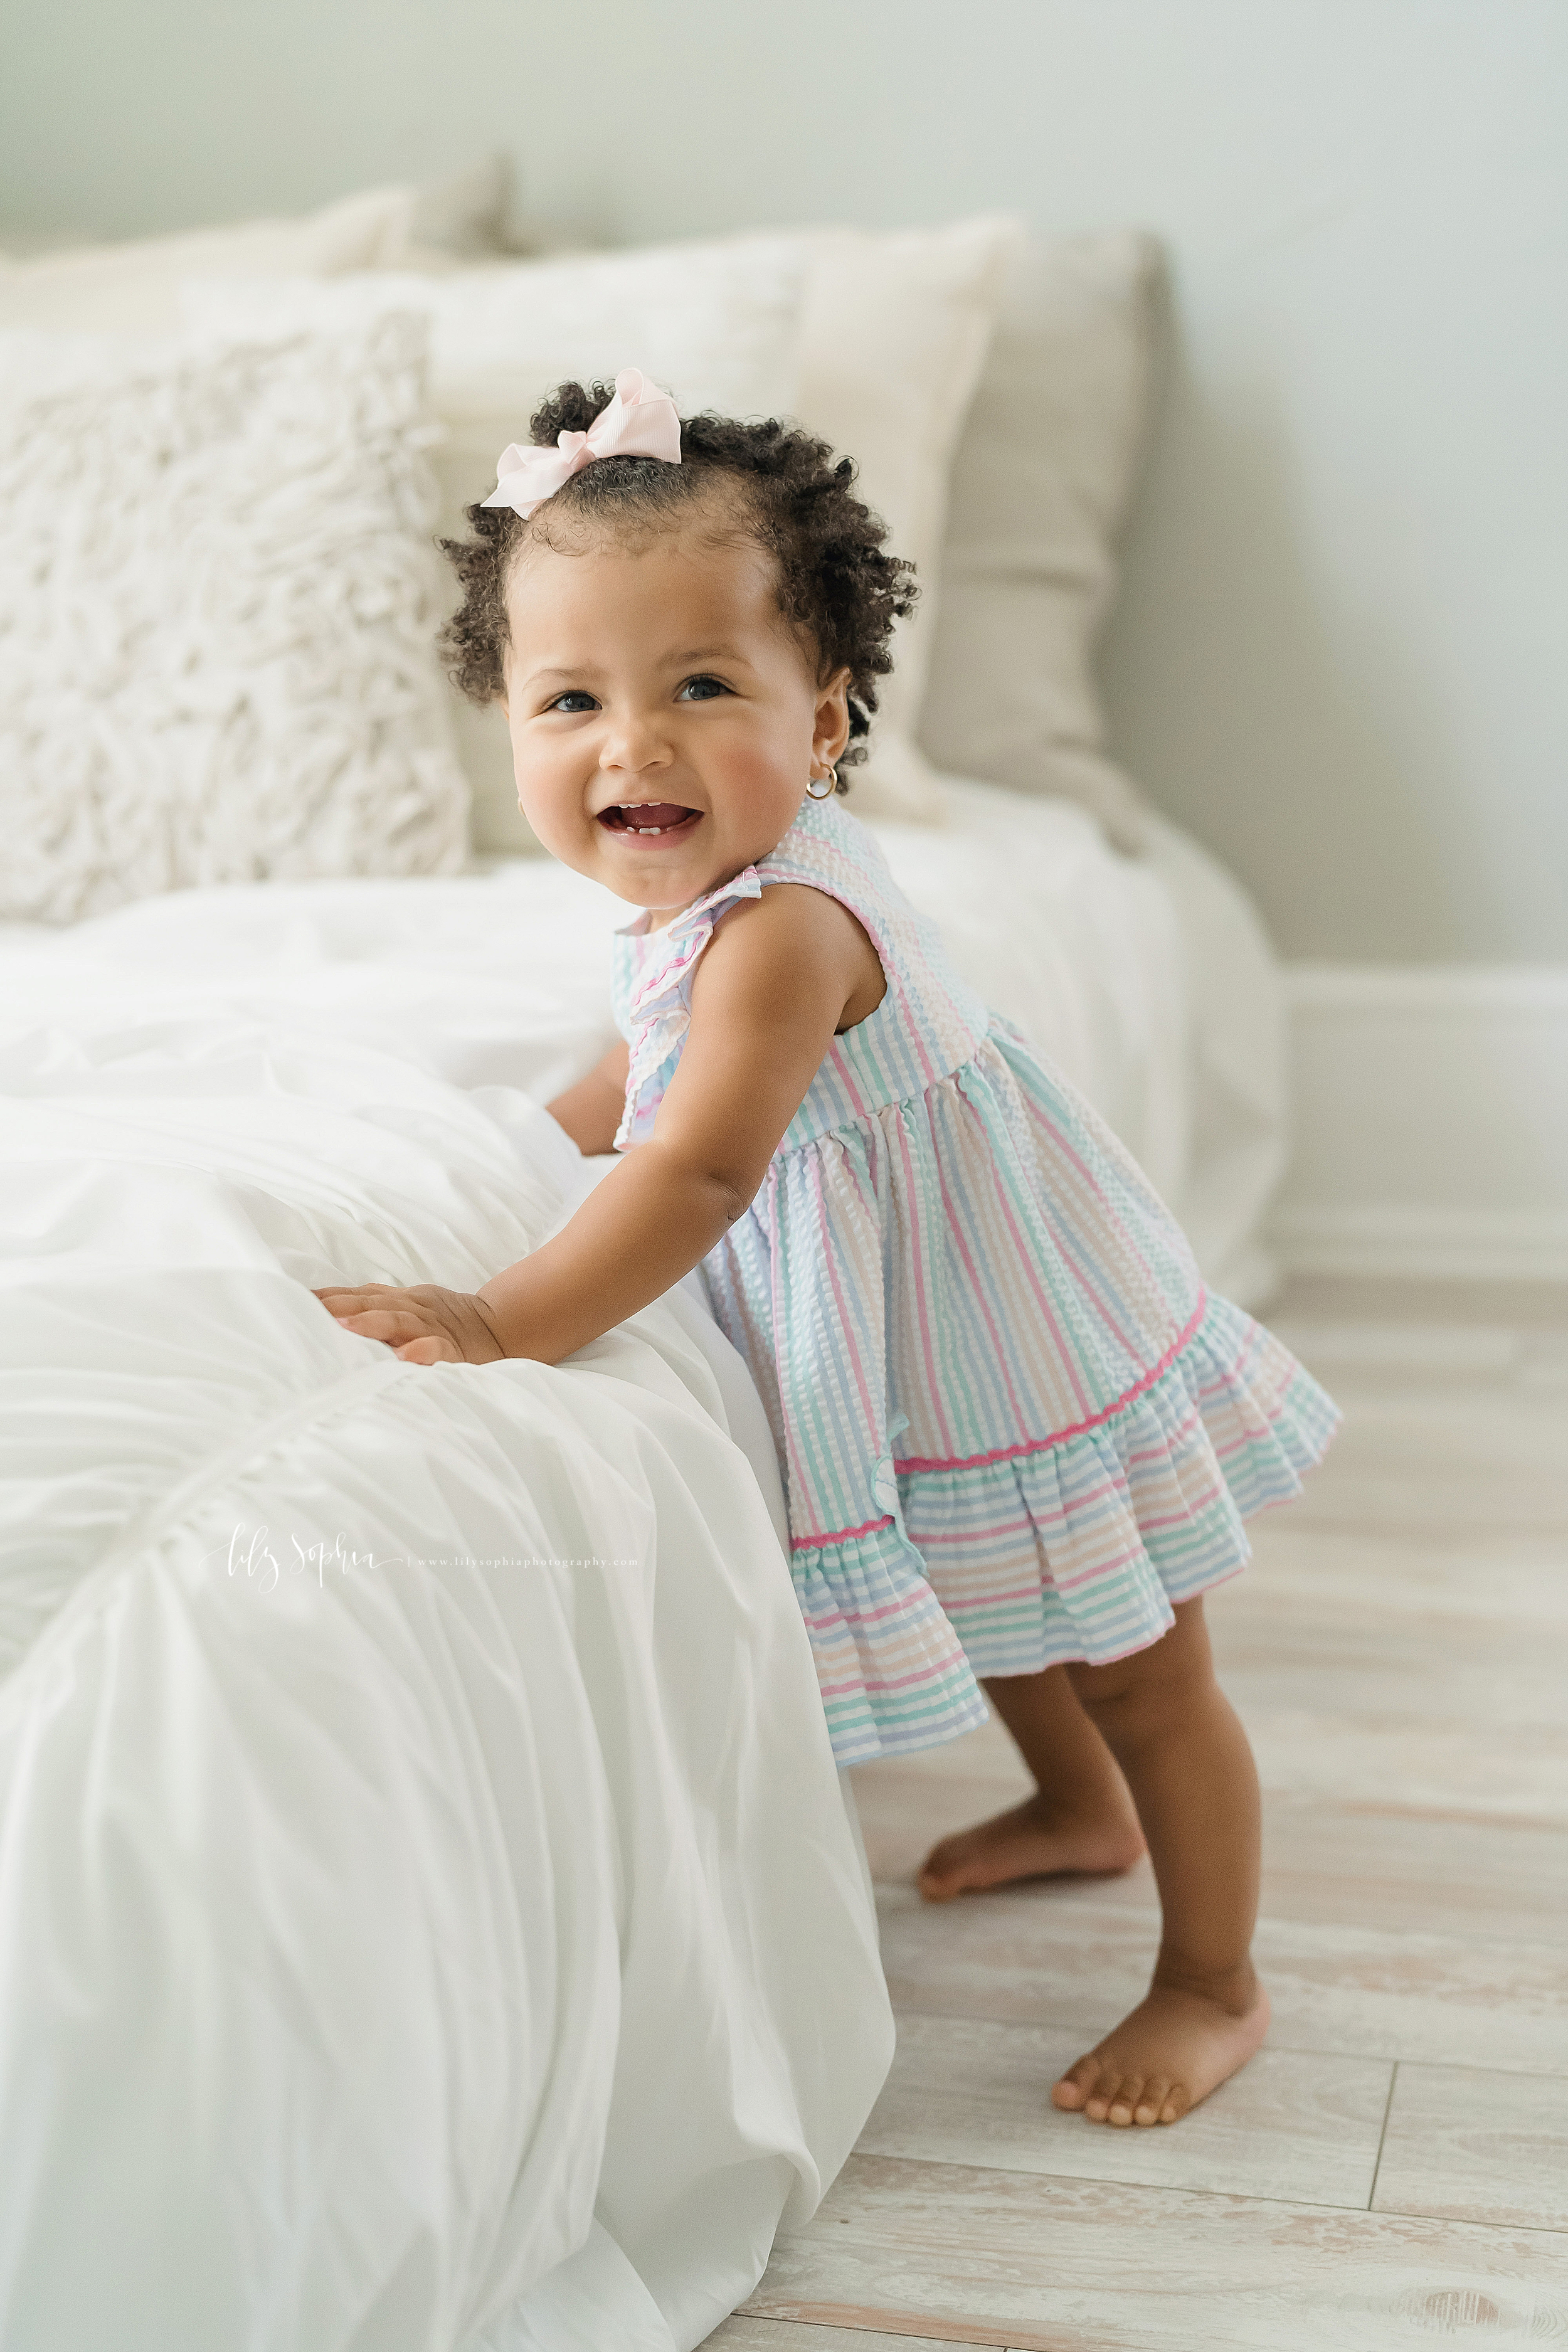 Milestone photo of a proud one year old African American girl standing next to a bed in natural light in an Atlanta studio.